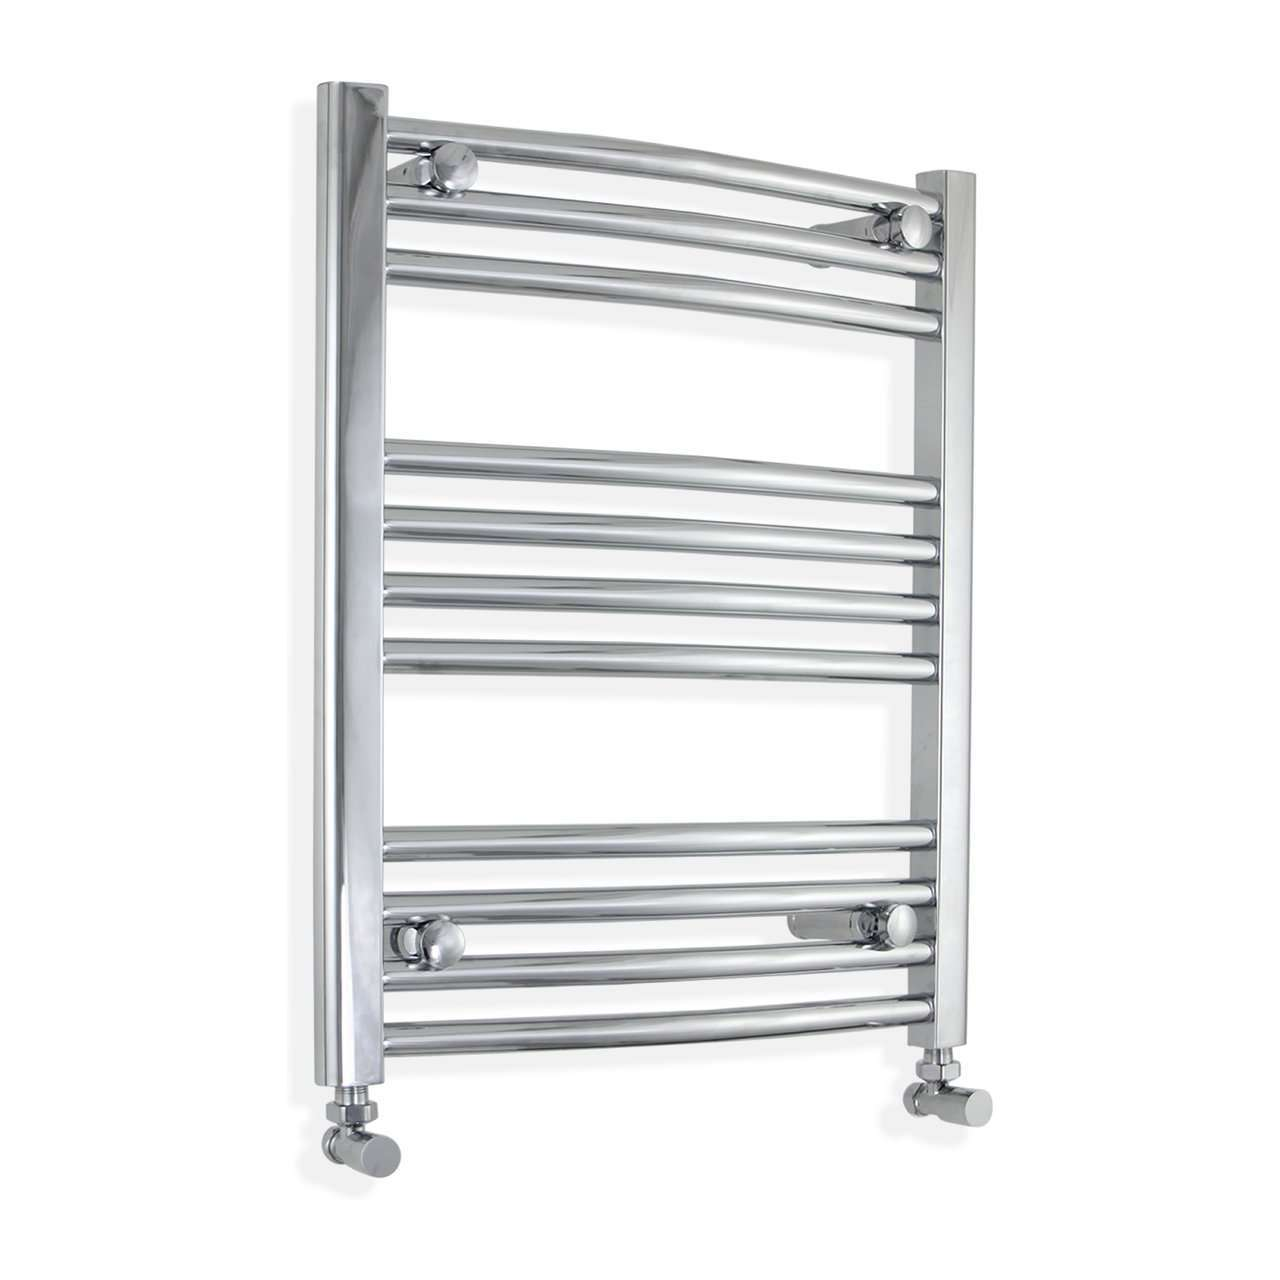 500mm Wide 600mm High Curved Chrome Heated Towel Rail Radiator HTR,With Angled Valve